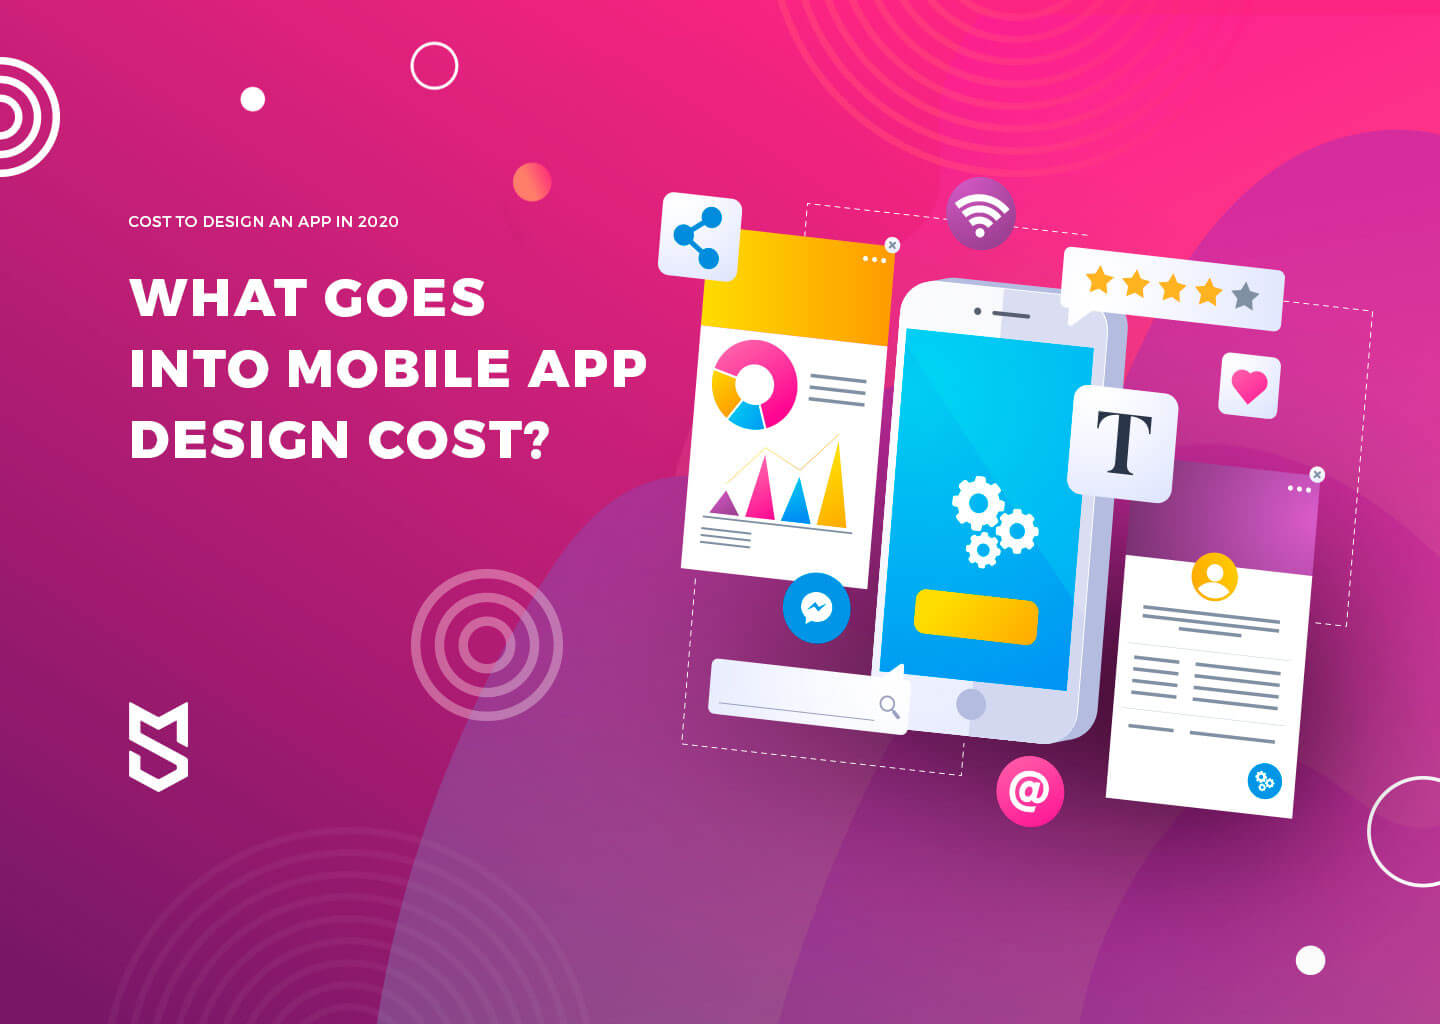 Cost to Design an App in 2020: What Goes into the Cost of Mobile App Design?